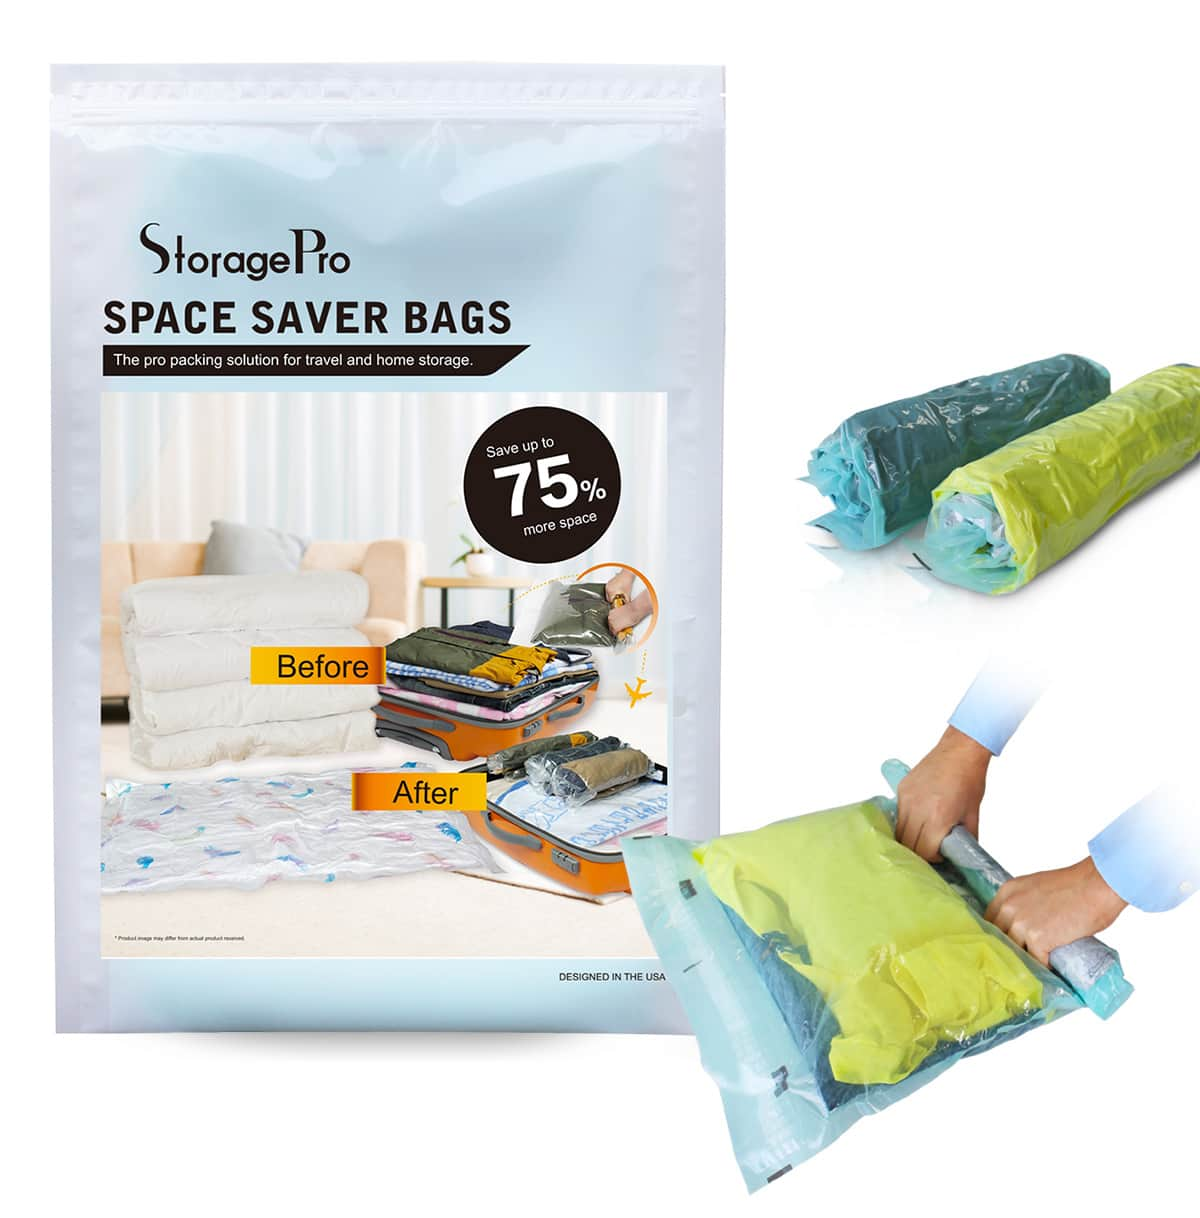 Pack of 9 Travel Space Saver Bags by StoragePro, Hand Rolling (No Vacuum Needed) Compression Bags 30% OFF @$11.76+FS @Amazon